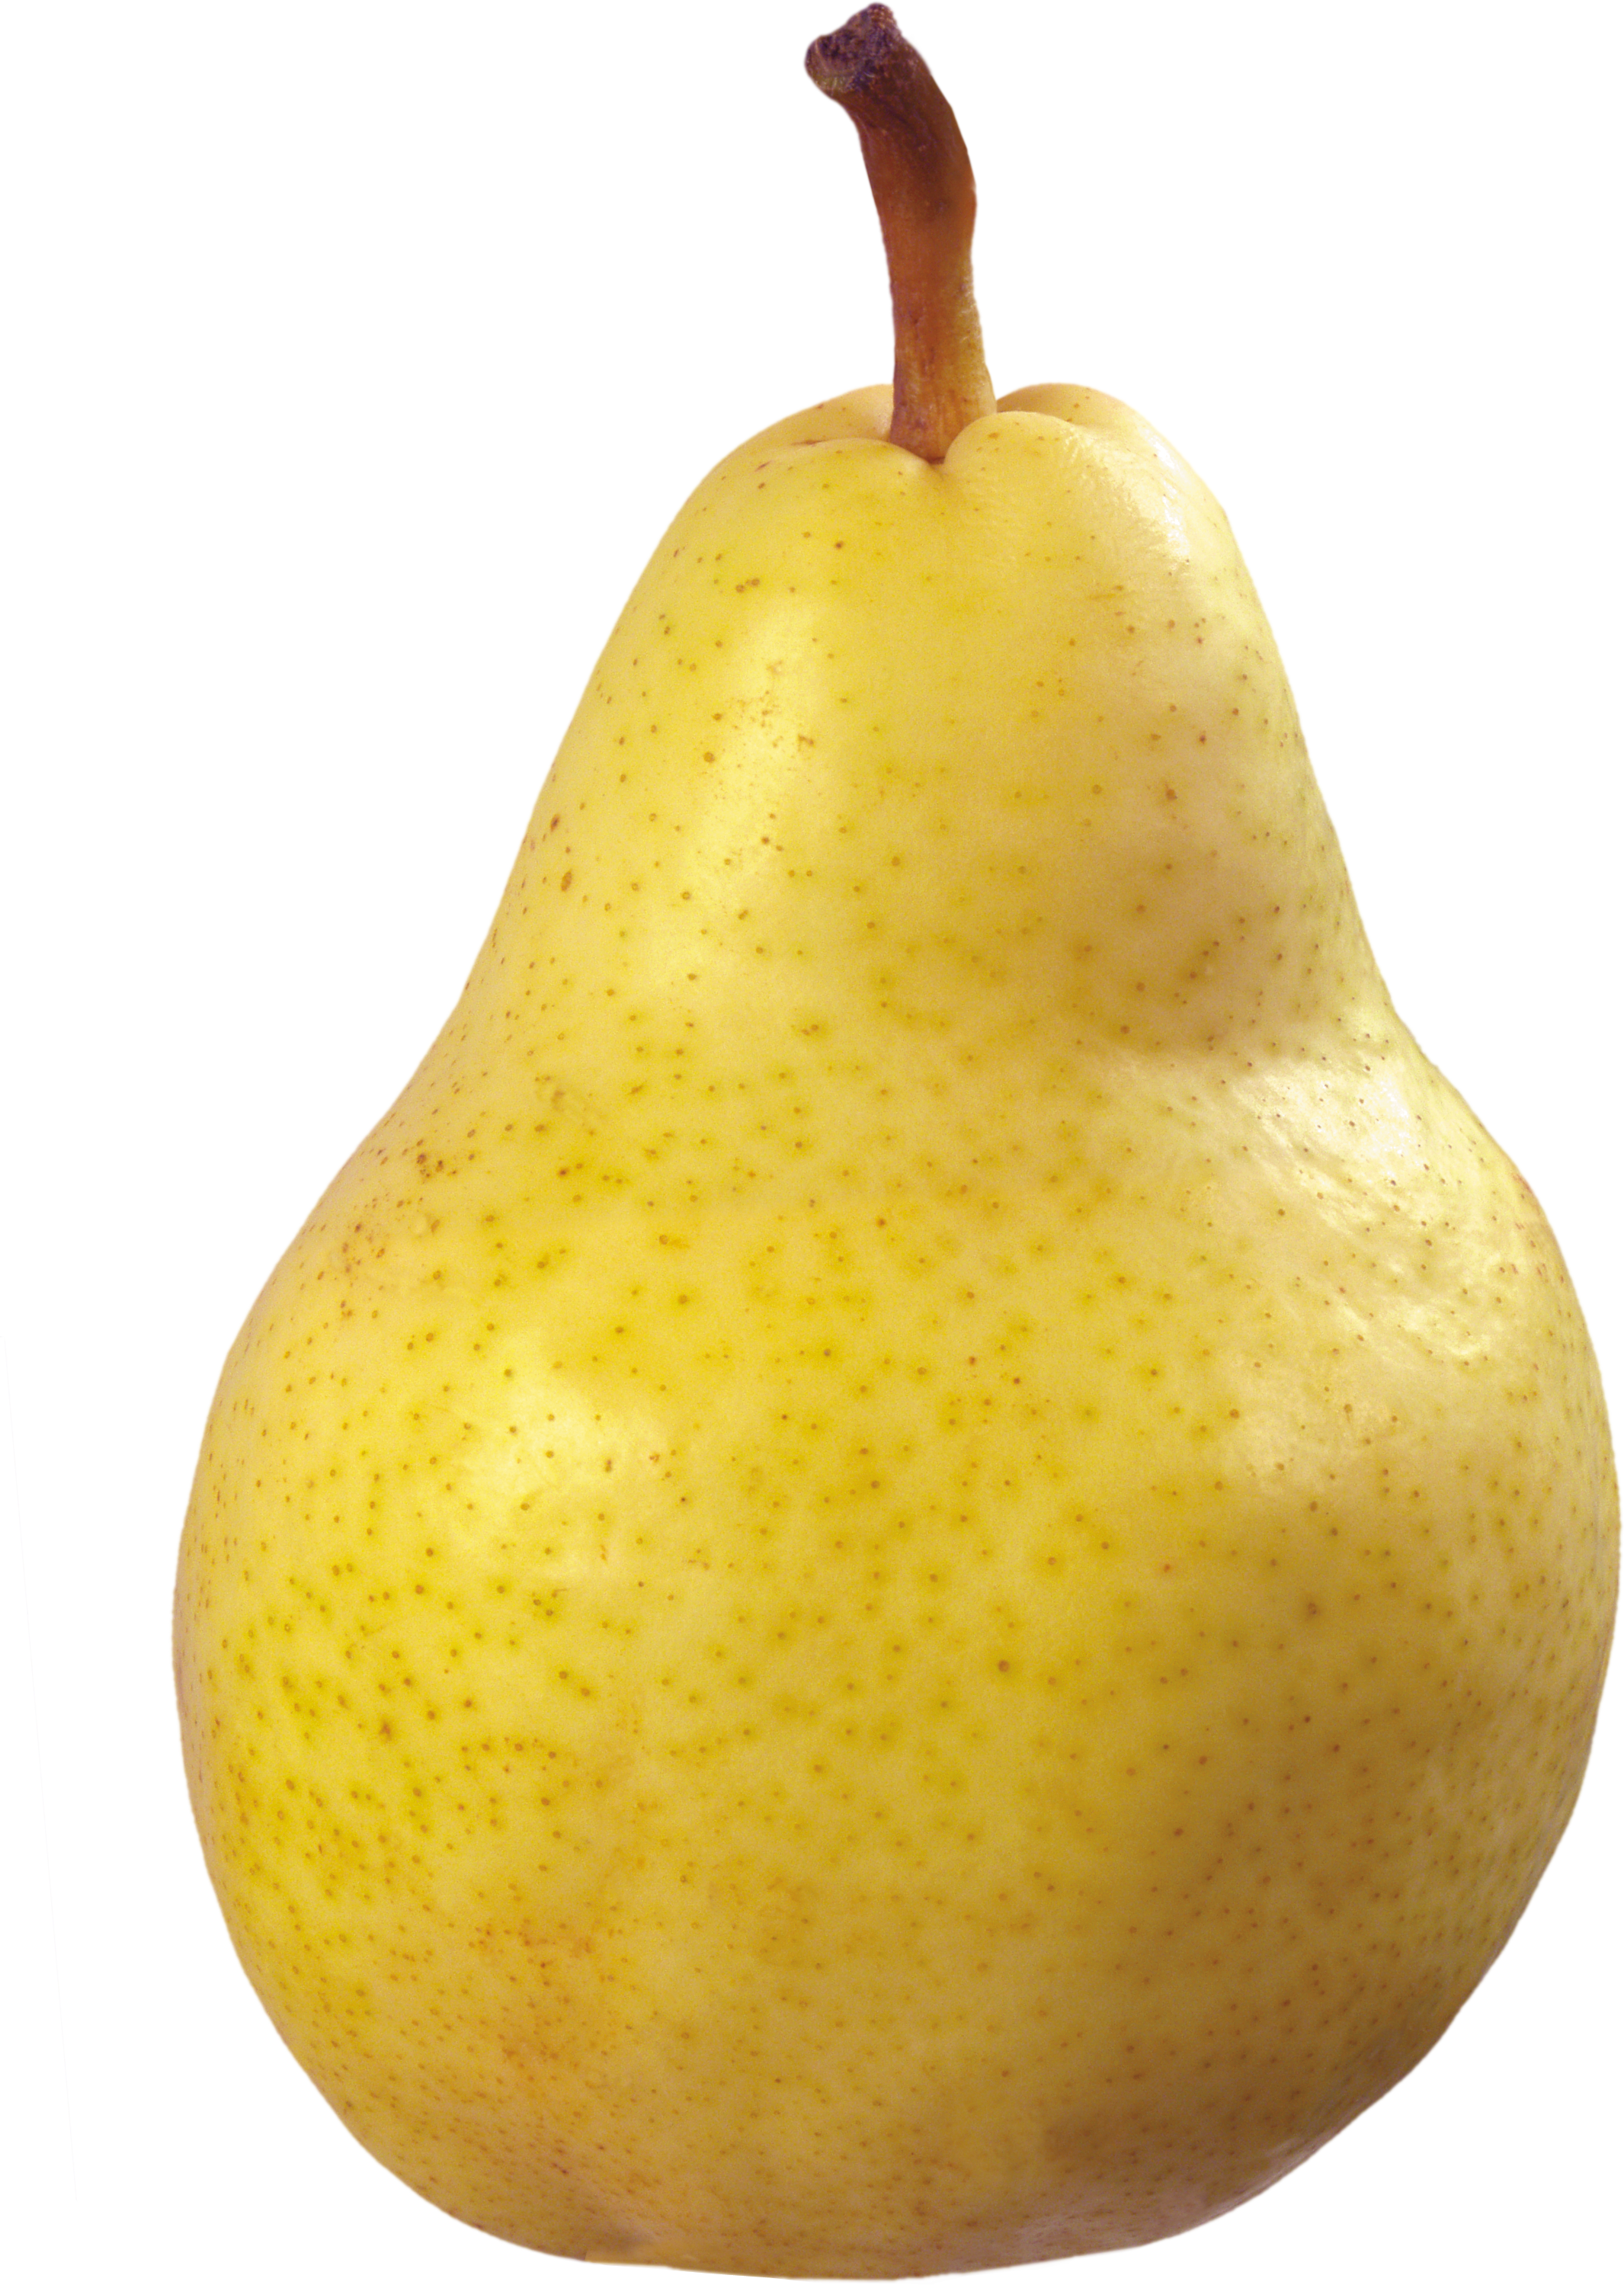 Pear PNG Picture - Pear HD PNG